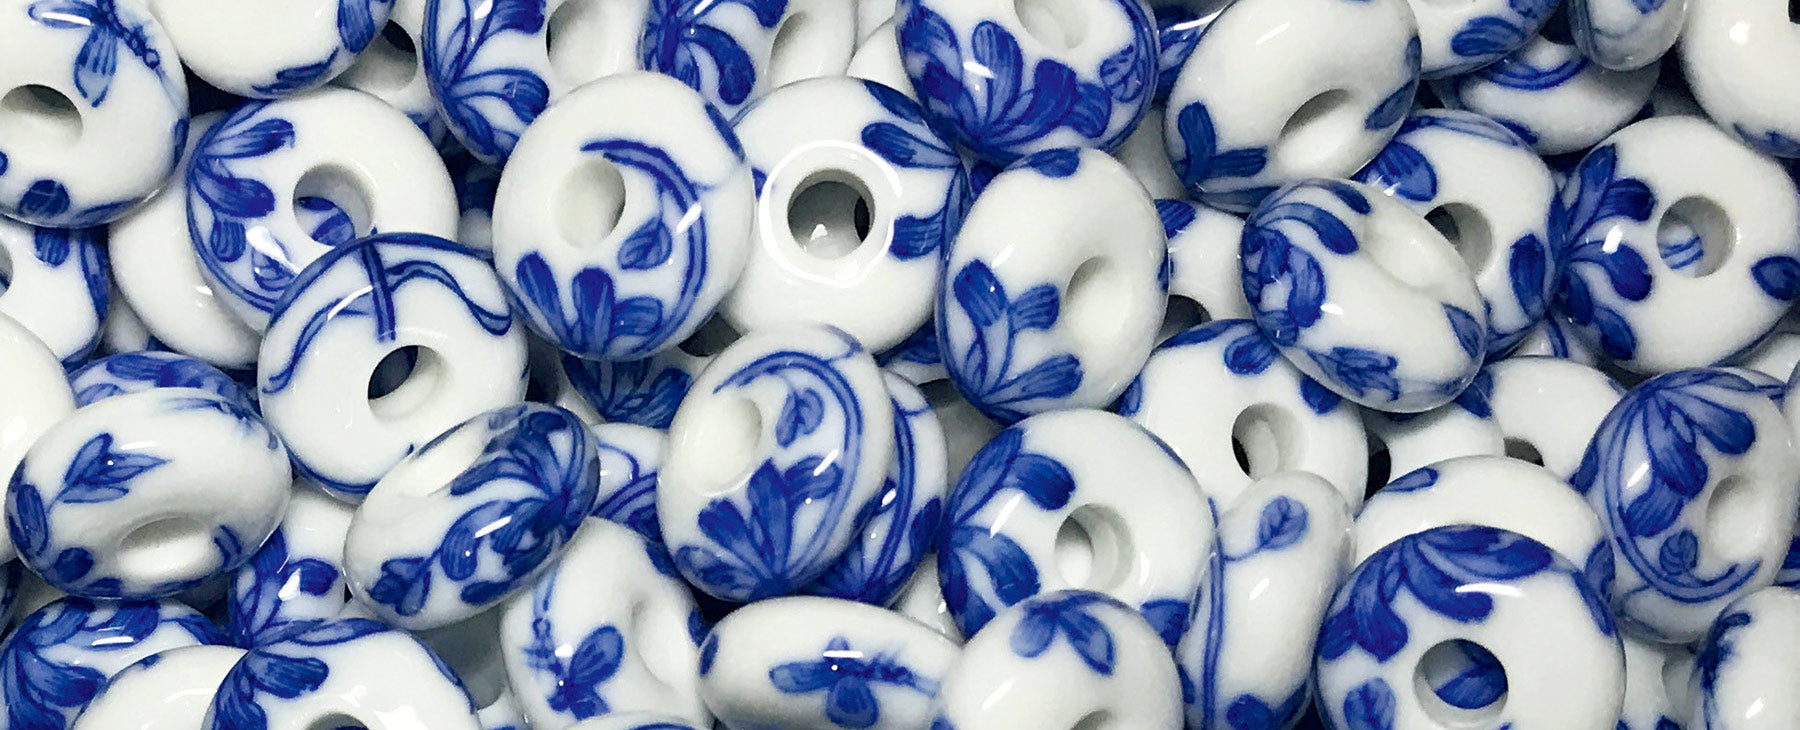 Lovely porcelain beads we use in our jewellery.